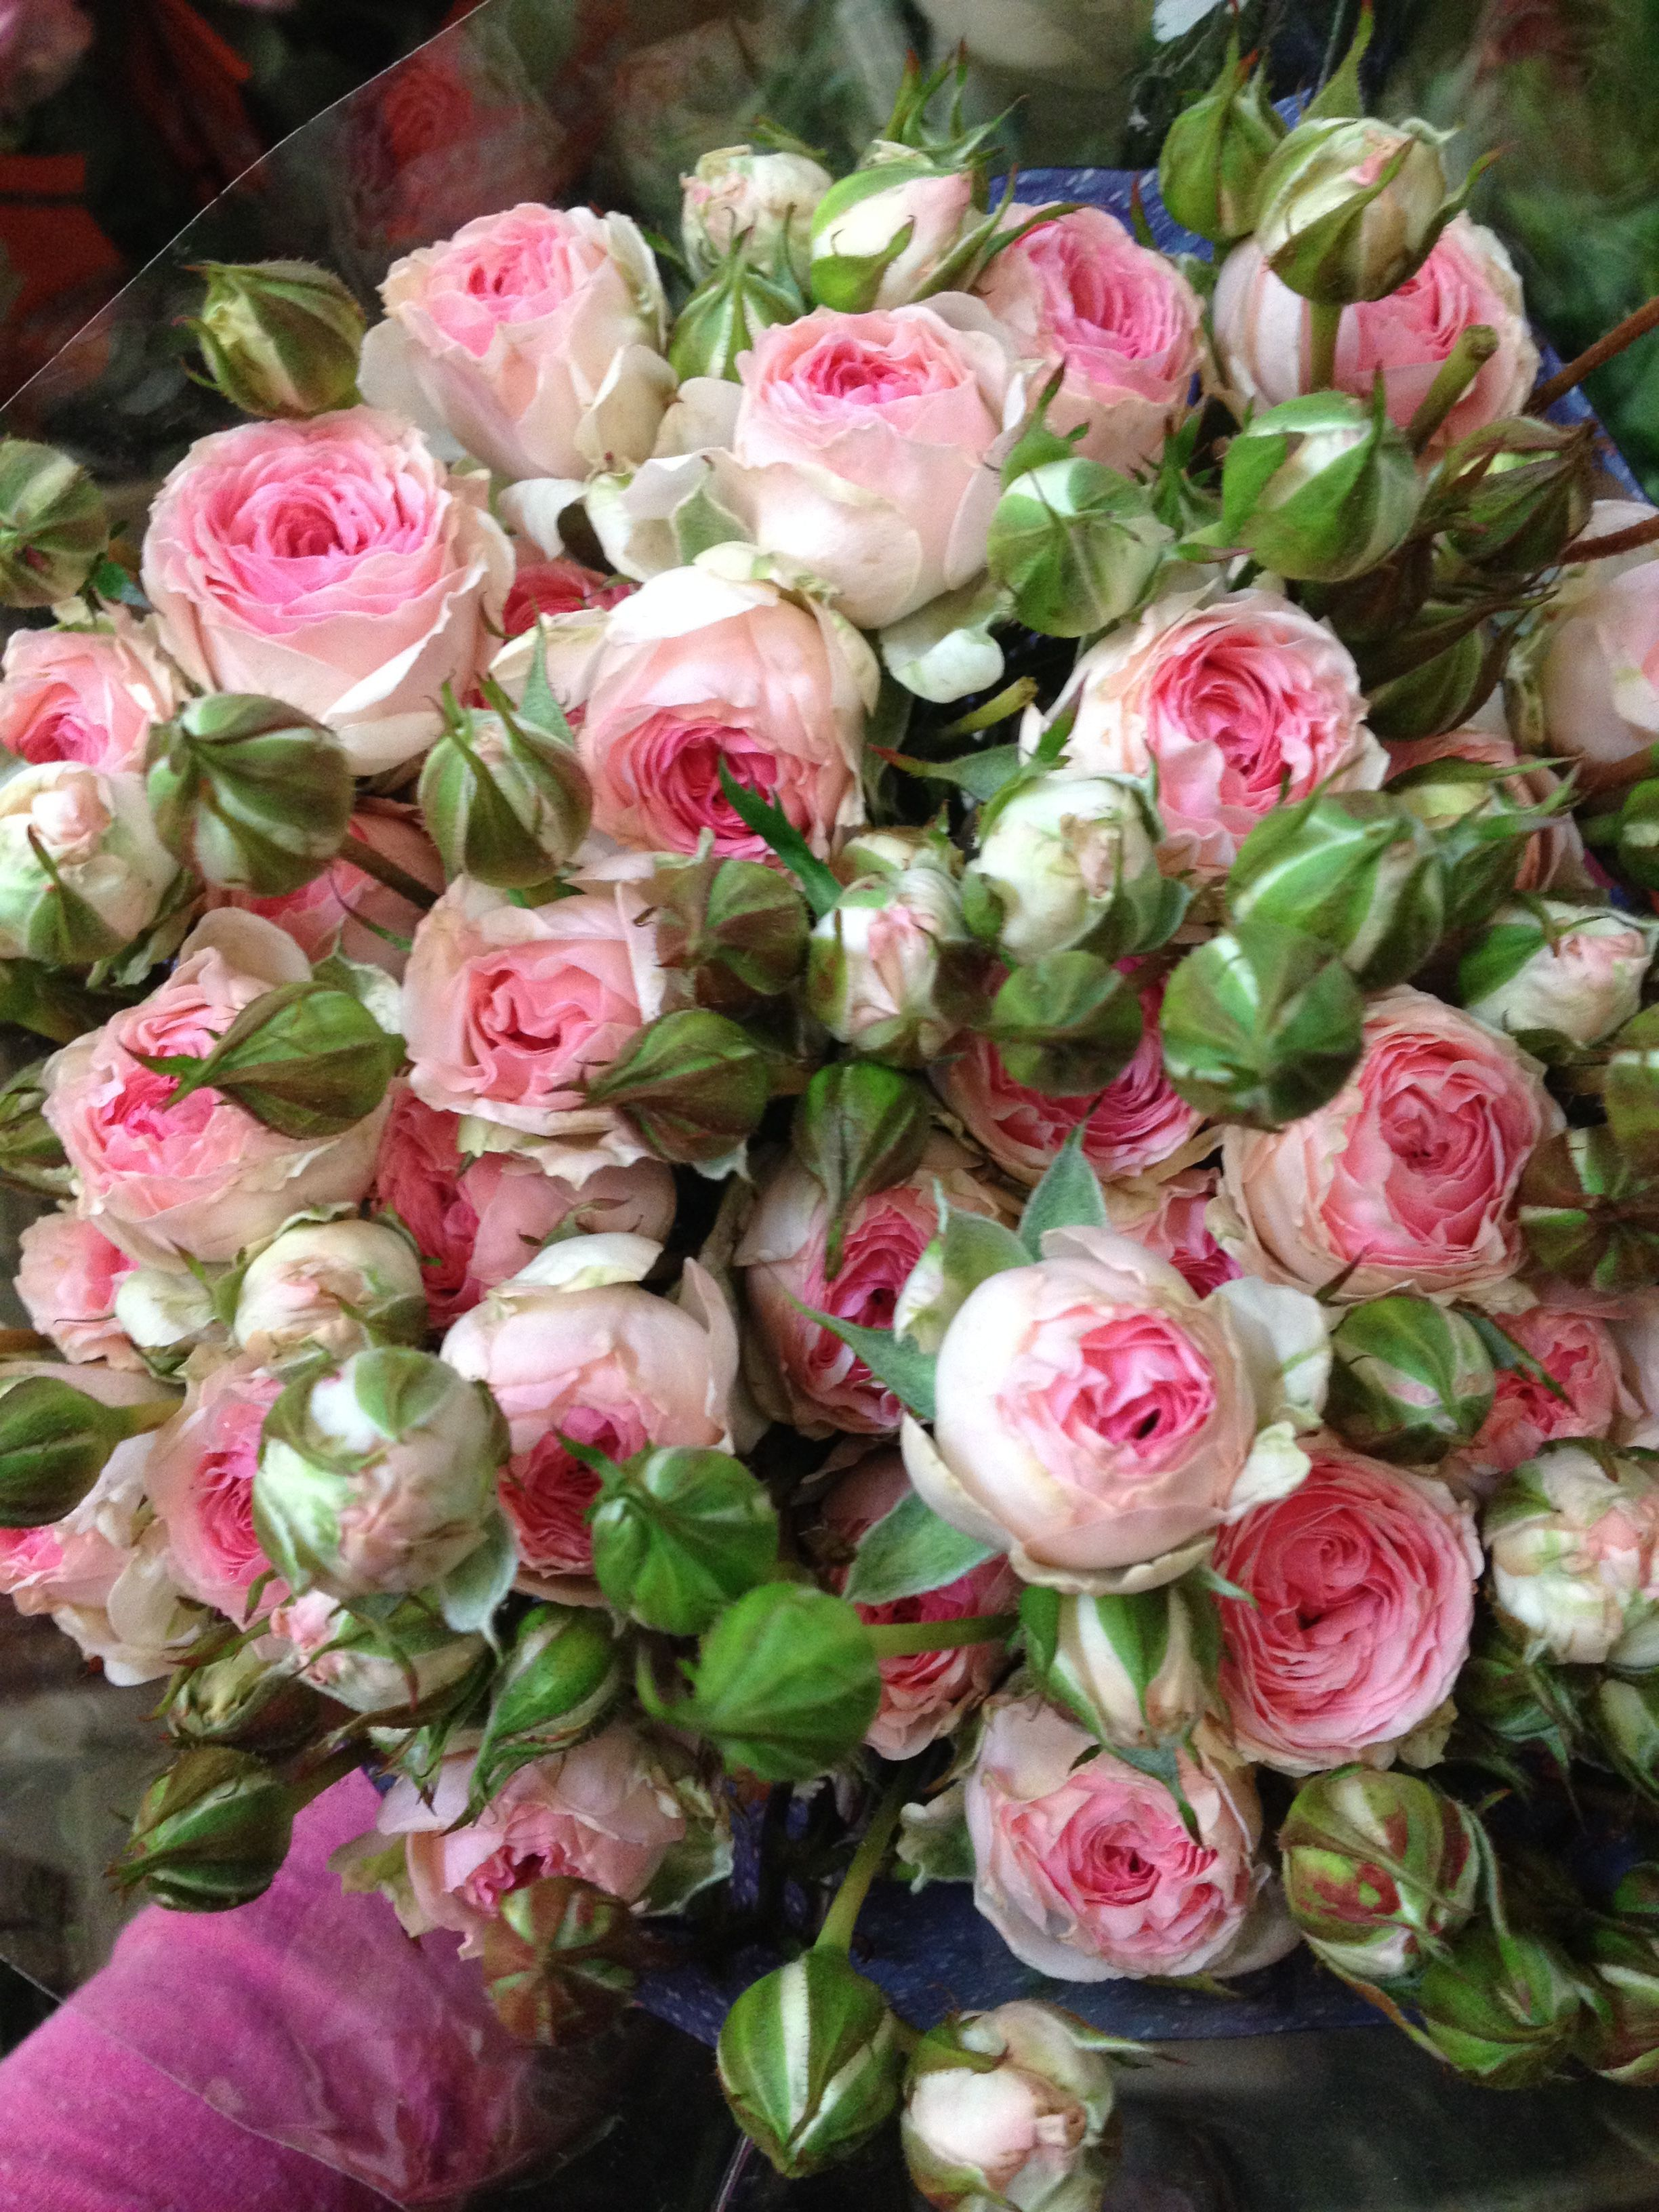 Home bulk roses peach roses - Spray Roses Called Kate Lynn These Are Large Sold In Bunches Of